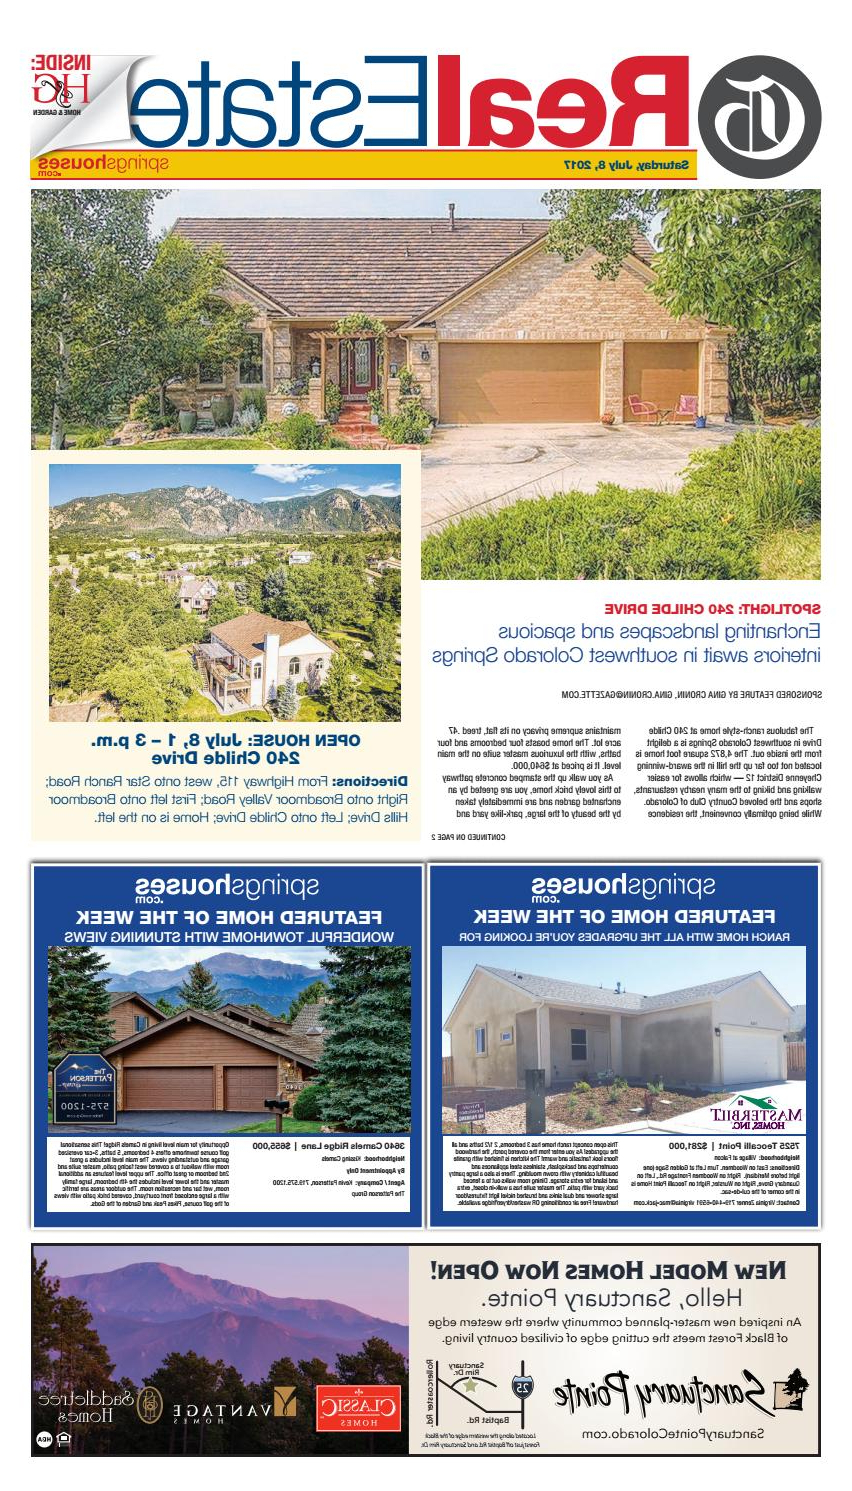 2019 Real Estate 07/08/17colorado Springs Gazette, Llc – Issuu Intended For Wurster Ceramic Drip Garden Stools (View 25 of 30)